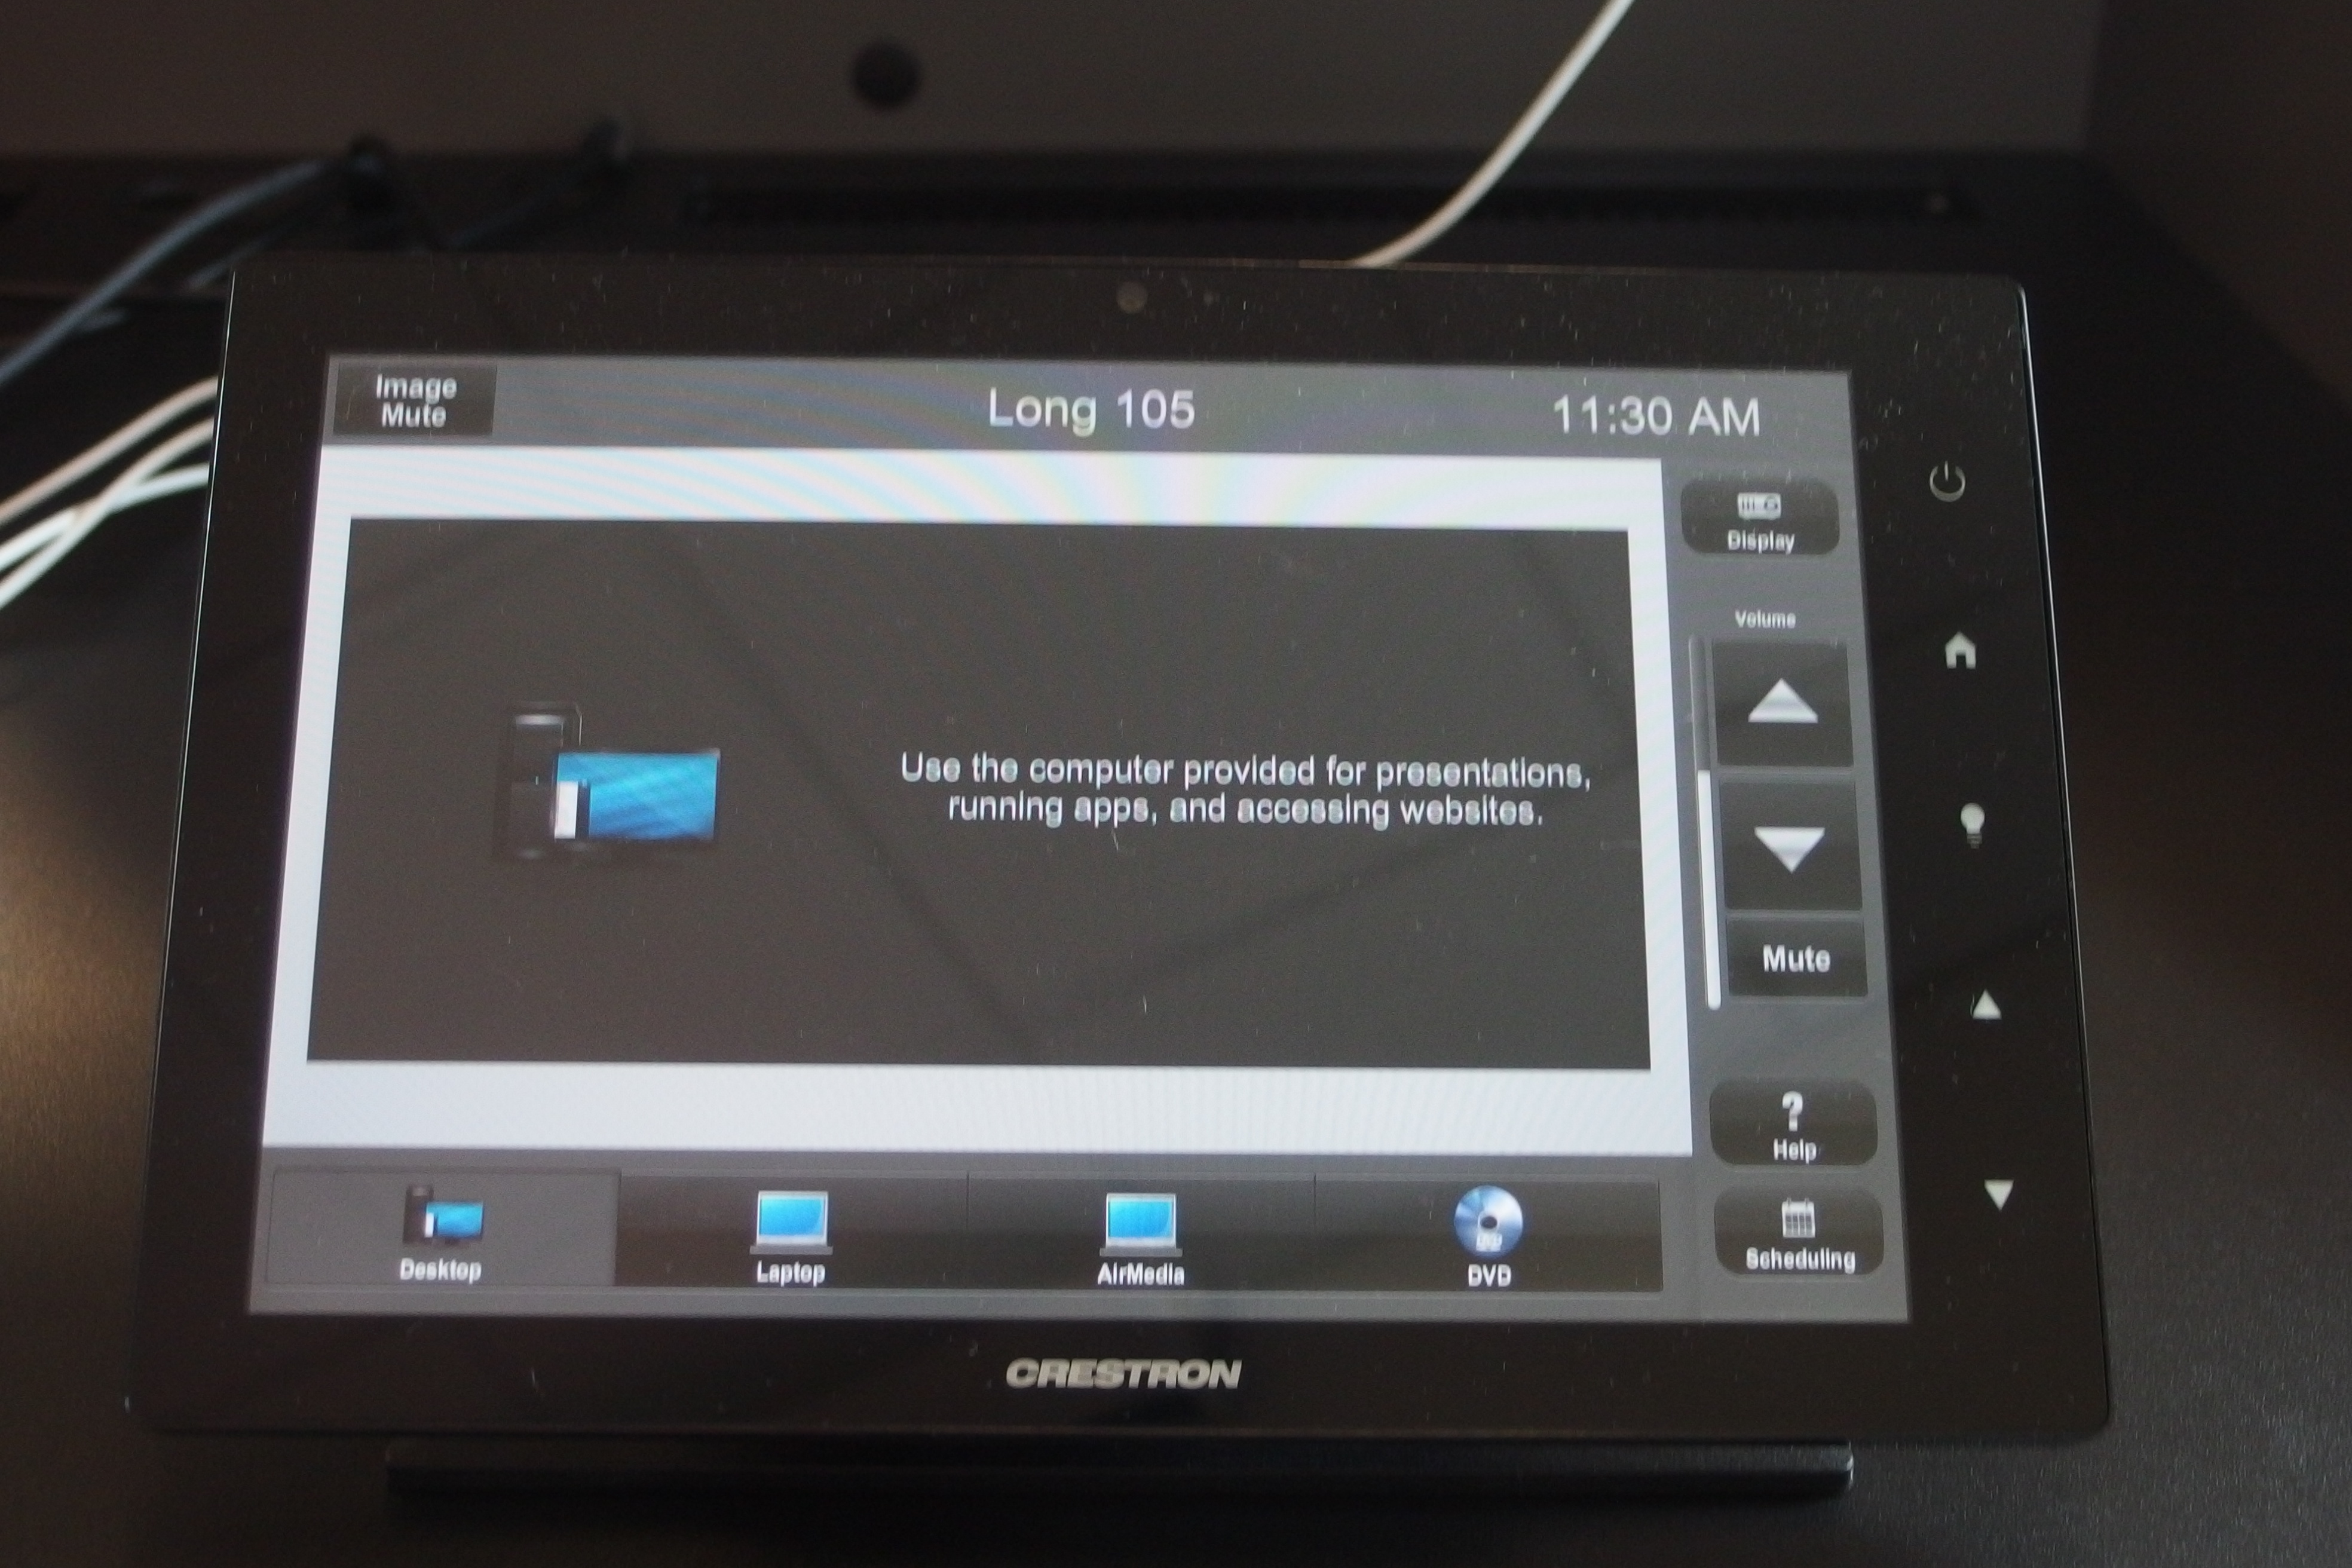 Photo of crestron control touch panel with the desktop tab active